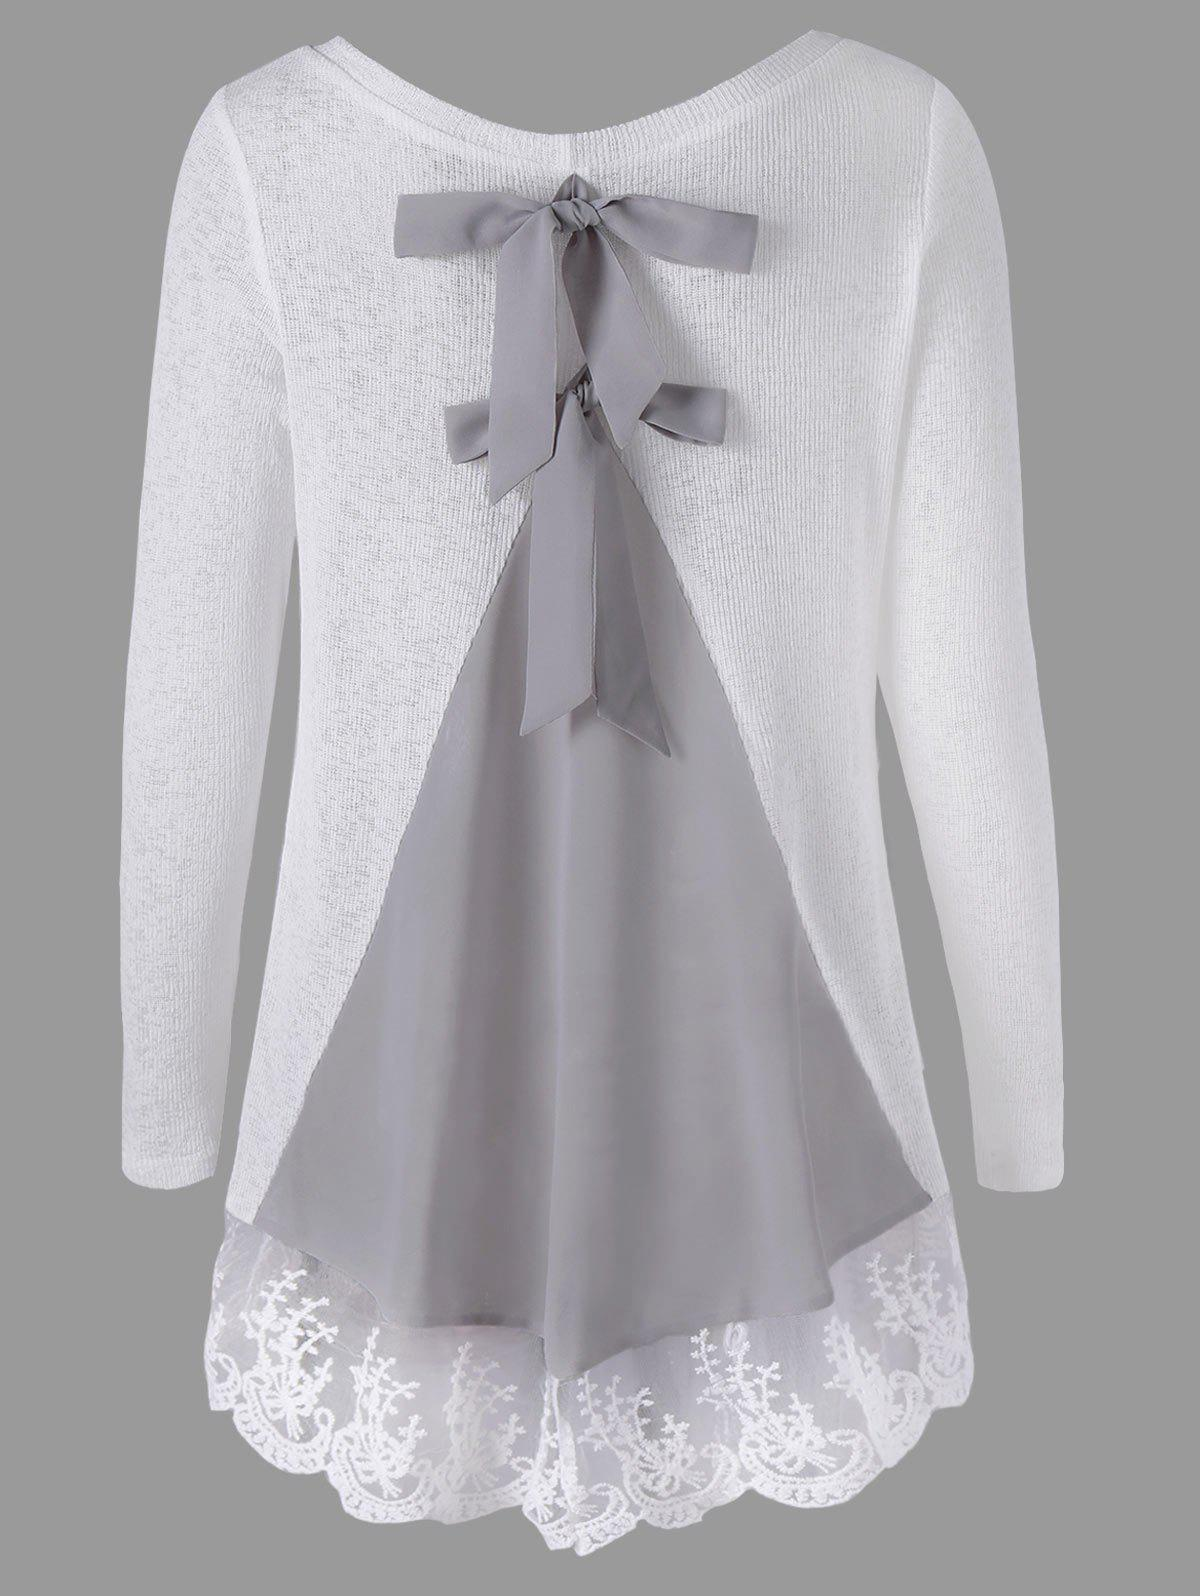 Hot Long Sleeve Back Bowknot Lace Panel Knit Top